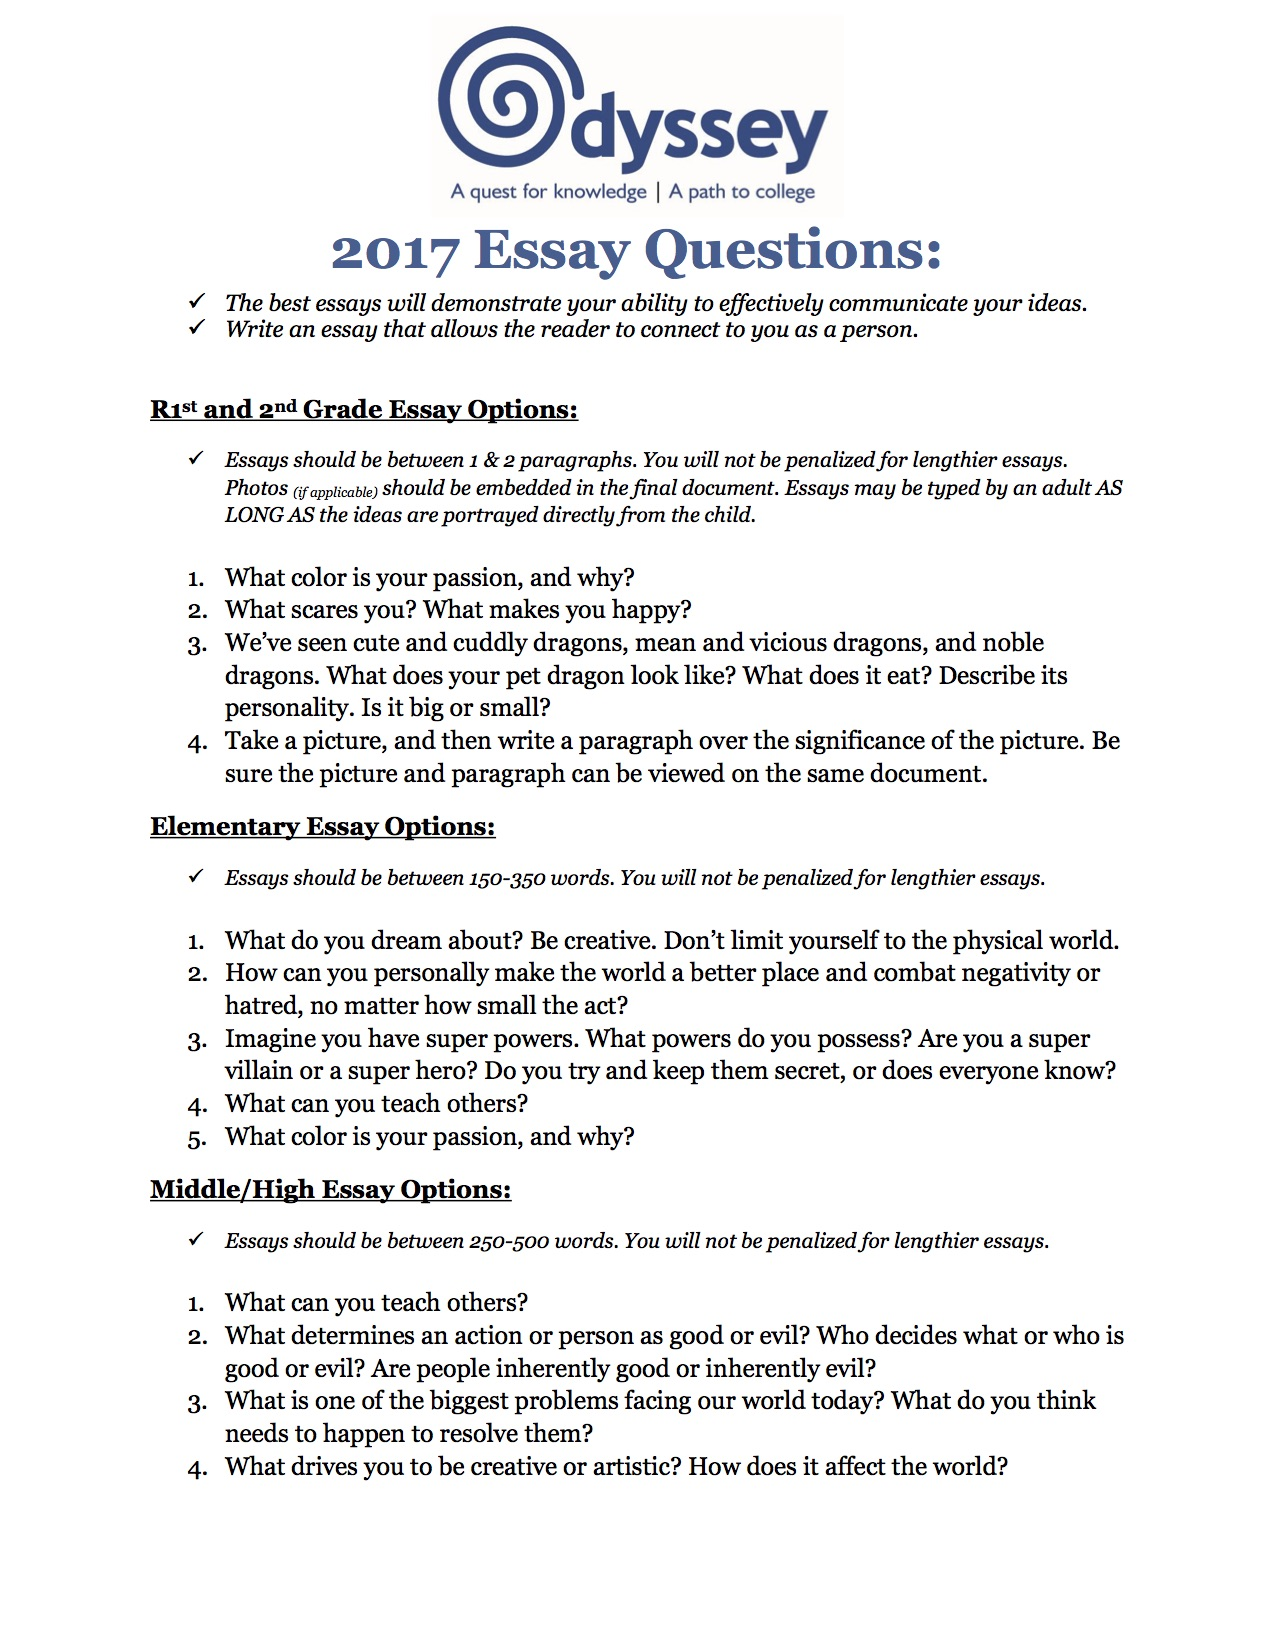 008 Student Essay Example The Odyssey Topics Greek Family How To Good Awesome Sat Examples Transfer Full